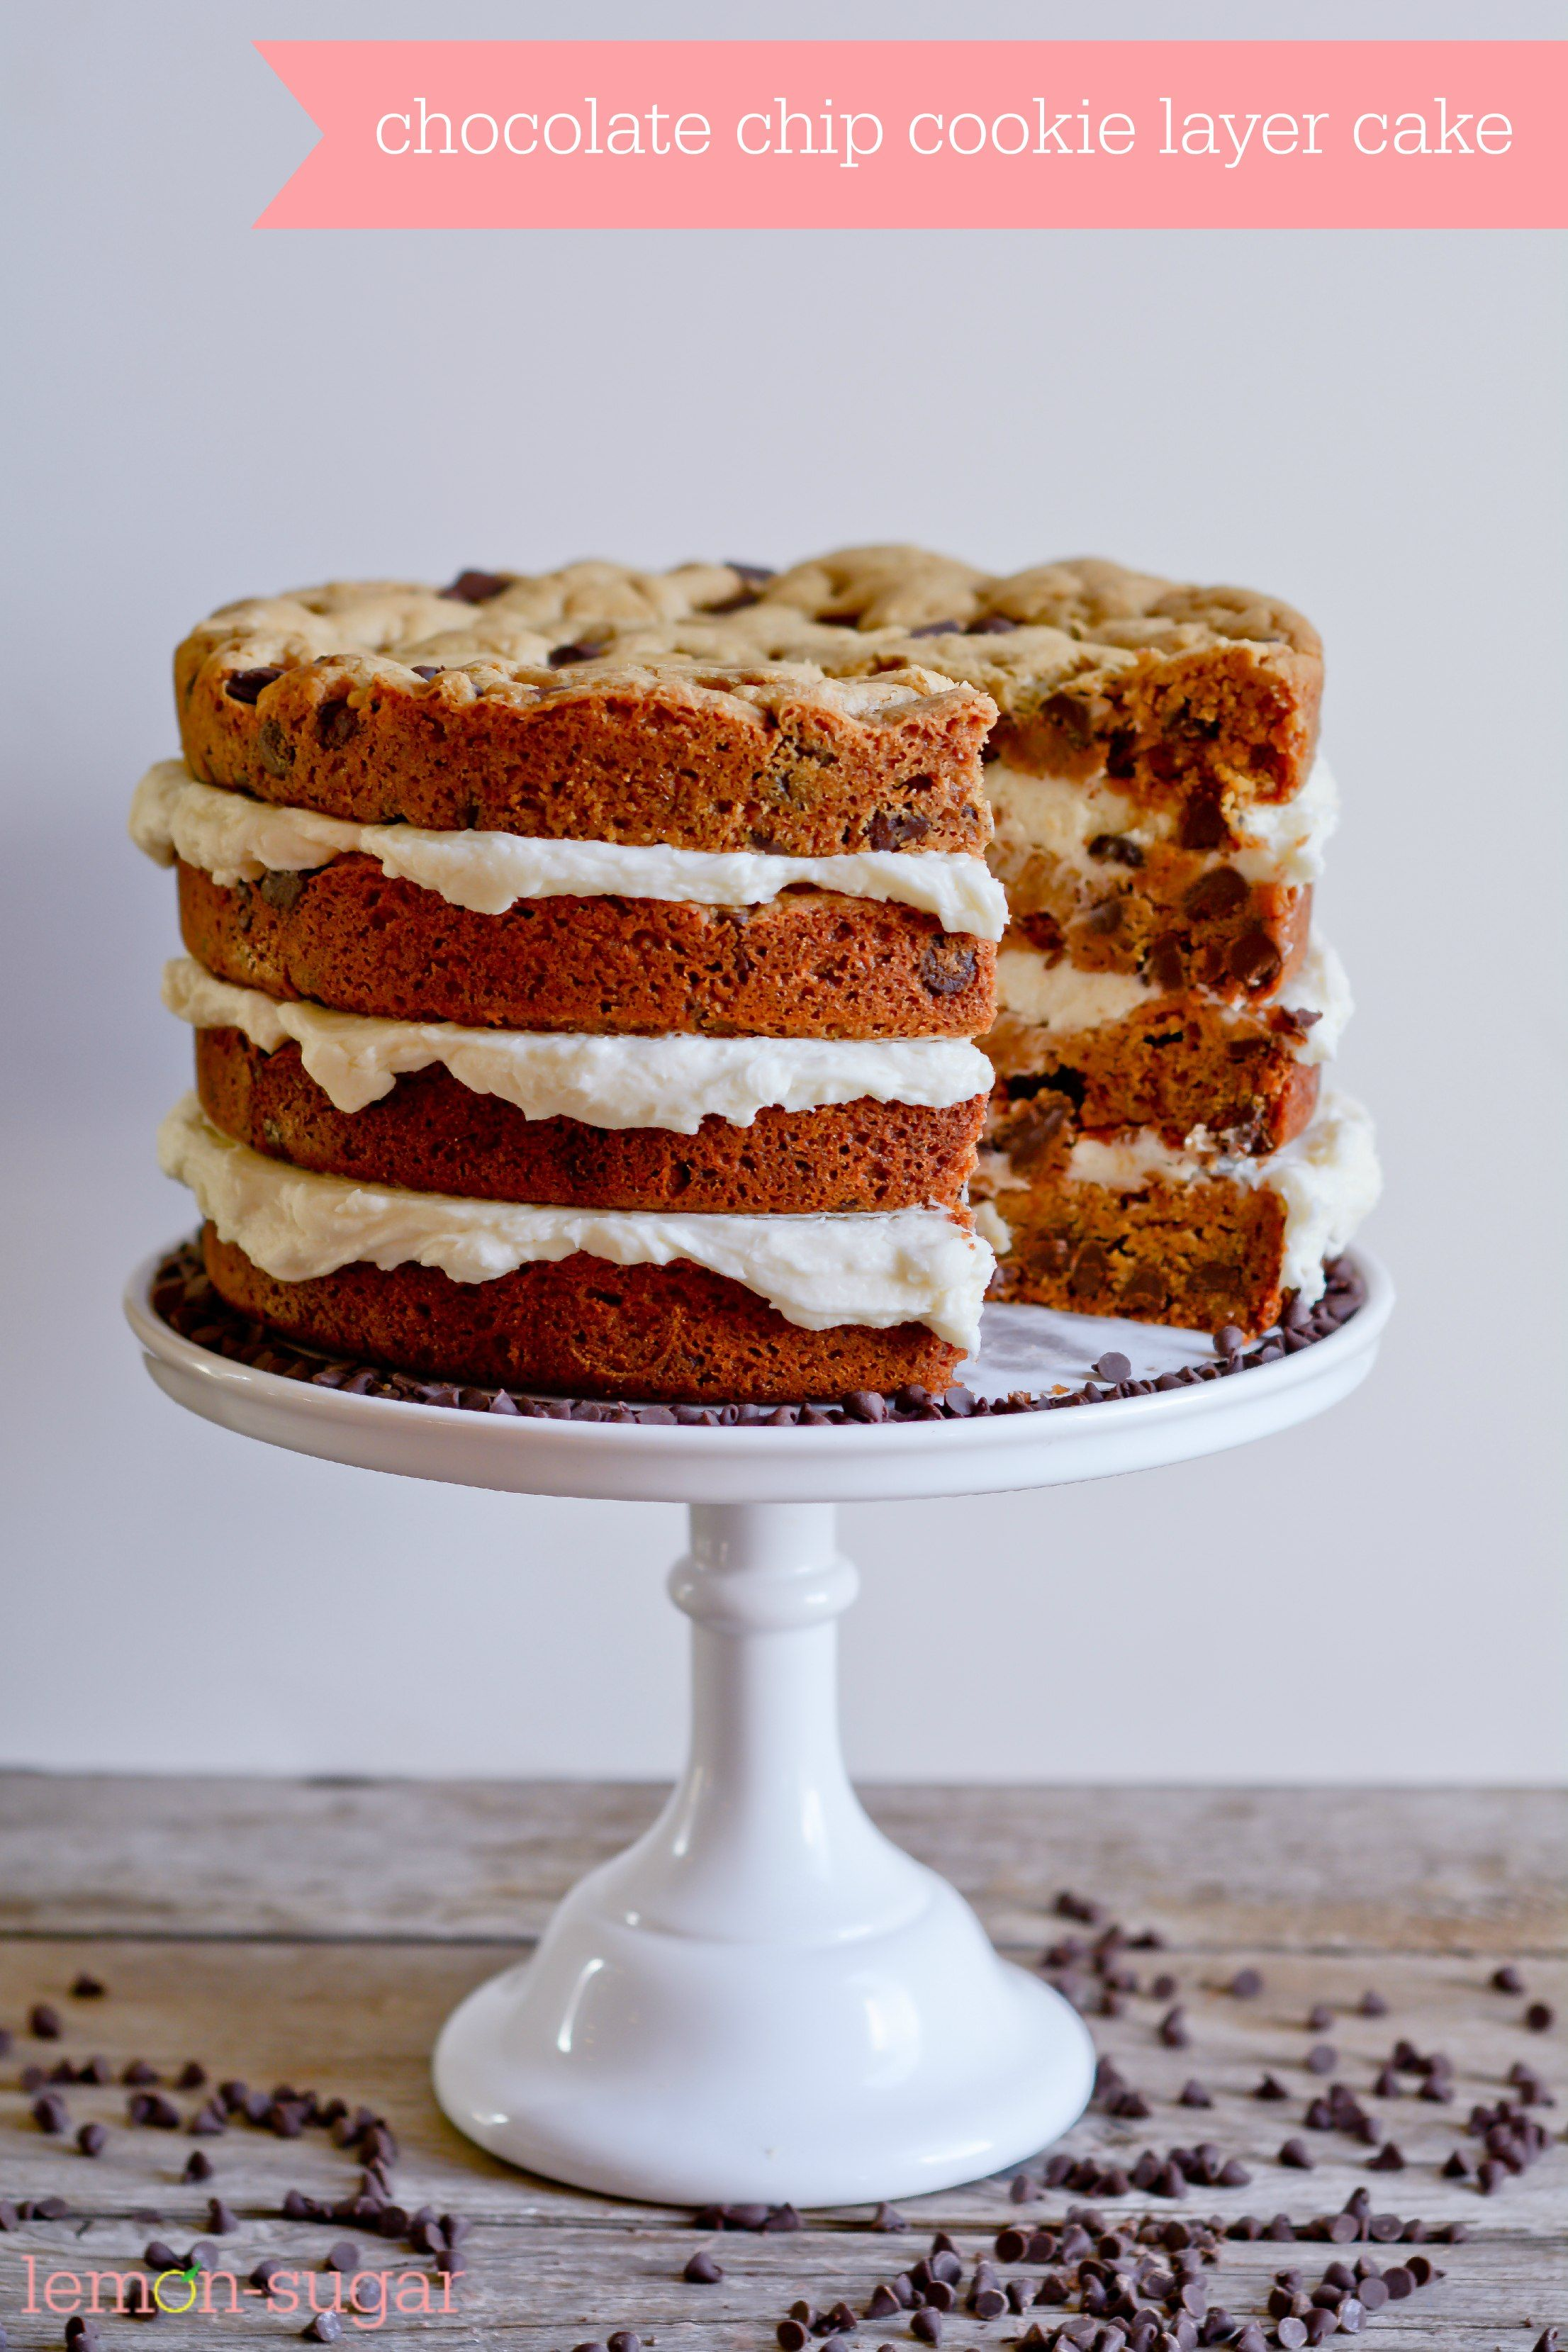 Chocolate Chip Cookie Layer Cake | Recipe | Chip cookies, Layering ...